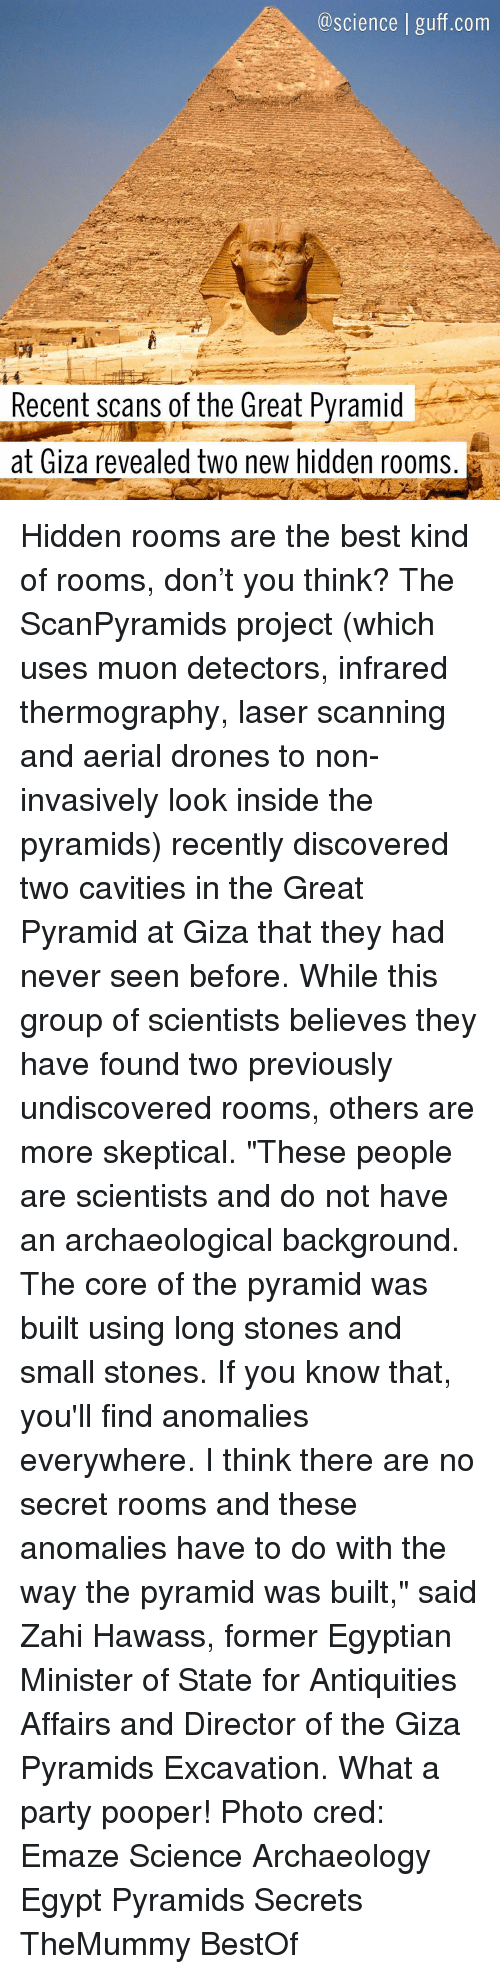 """antiquated: a science guff com  Recent scans of the Great Pyramid  at Giza revealed two new hidden rooms. Hidden rooms are the best kind of rooms, don't you think? The ScanPyramids project (which uses muon detectors, infrared thermography, laser scanning and aerial drones to non-invasively look inside the pyramids) recently discovered two cavities in the Great Pyramid at Giza that they had never seen before. While this group of scientists believes they have found two previously undiscovered rooms, others are more skeptical. """"These people are scientists and do not have an archaeological background. The core of the pyramid was built using long stones and small stones. If you know that, you'll find anomalies everywhere. I think there are no secret rooms and these anomalies have to do with the way the pyramid was built,"""" said Zahi Hawass, former Egyptian Minister of State for Antiquities Affairs and Director of the Giza Pyramids Excavation. What a party pooper! Photo cred: Emaze Science Archaeology Egypt Pyramids Secrets TheMummy BestOf"""